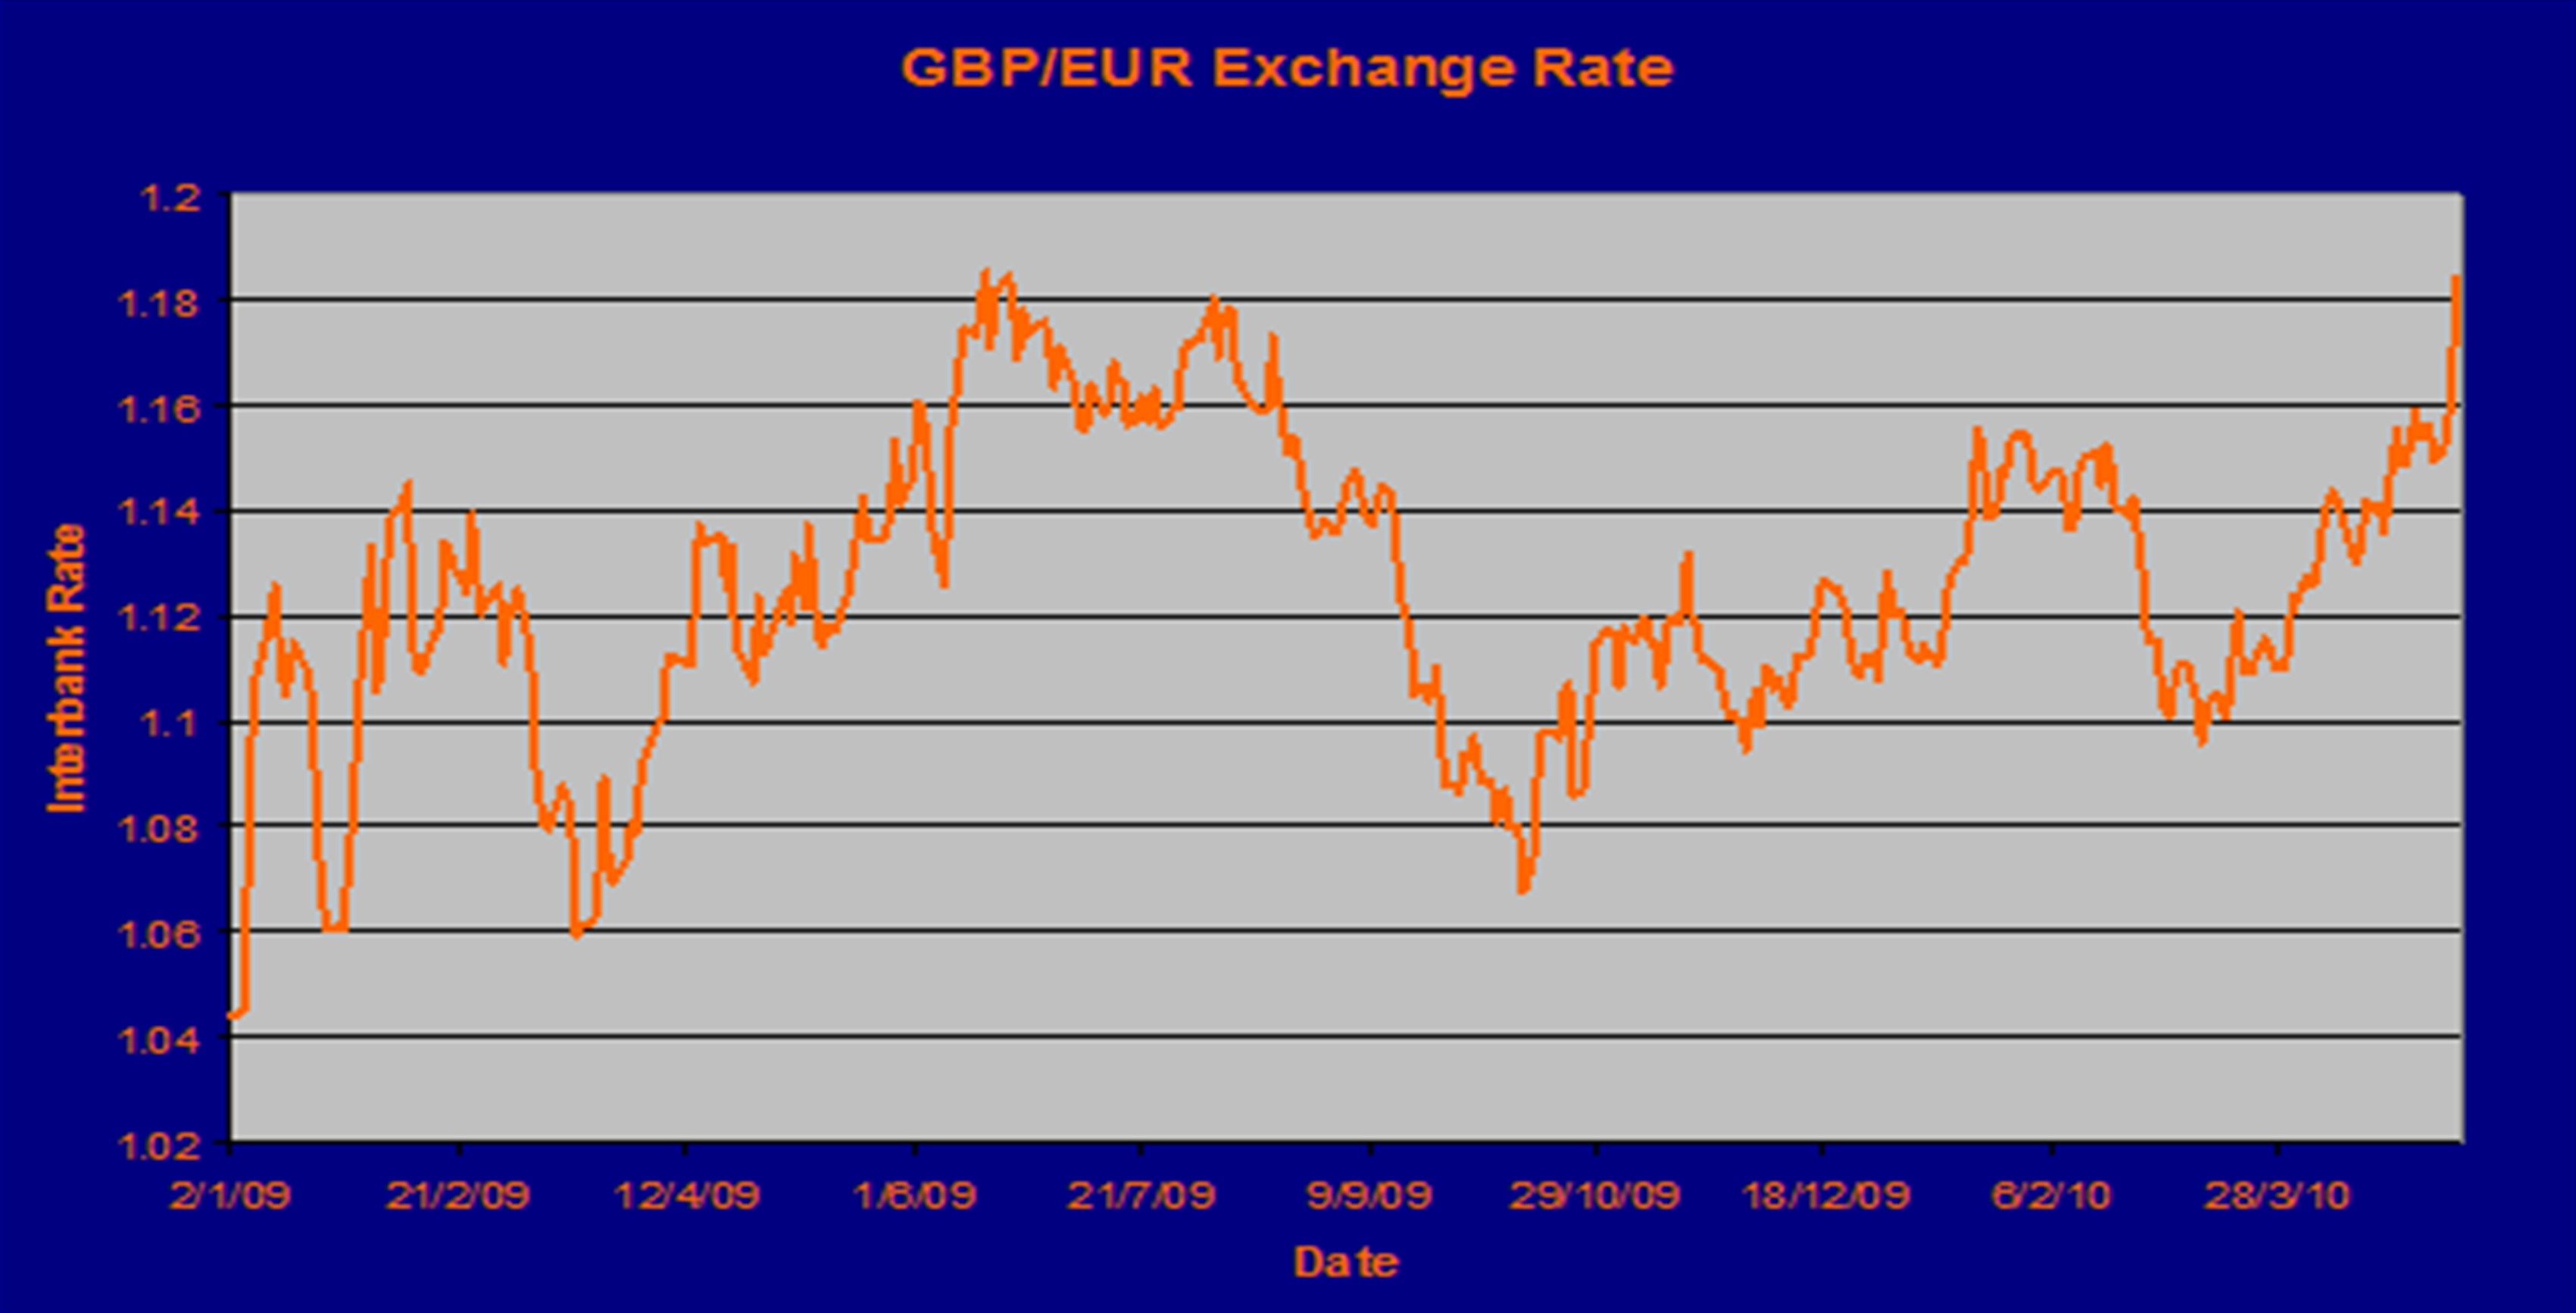 Money.pl forex gbp